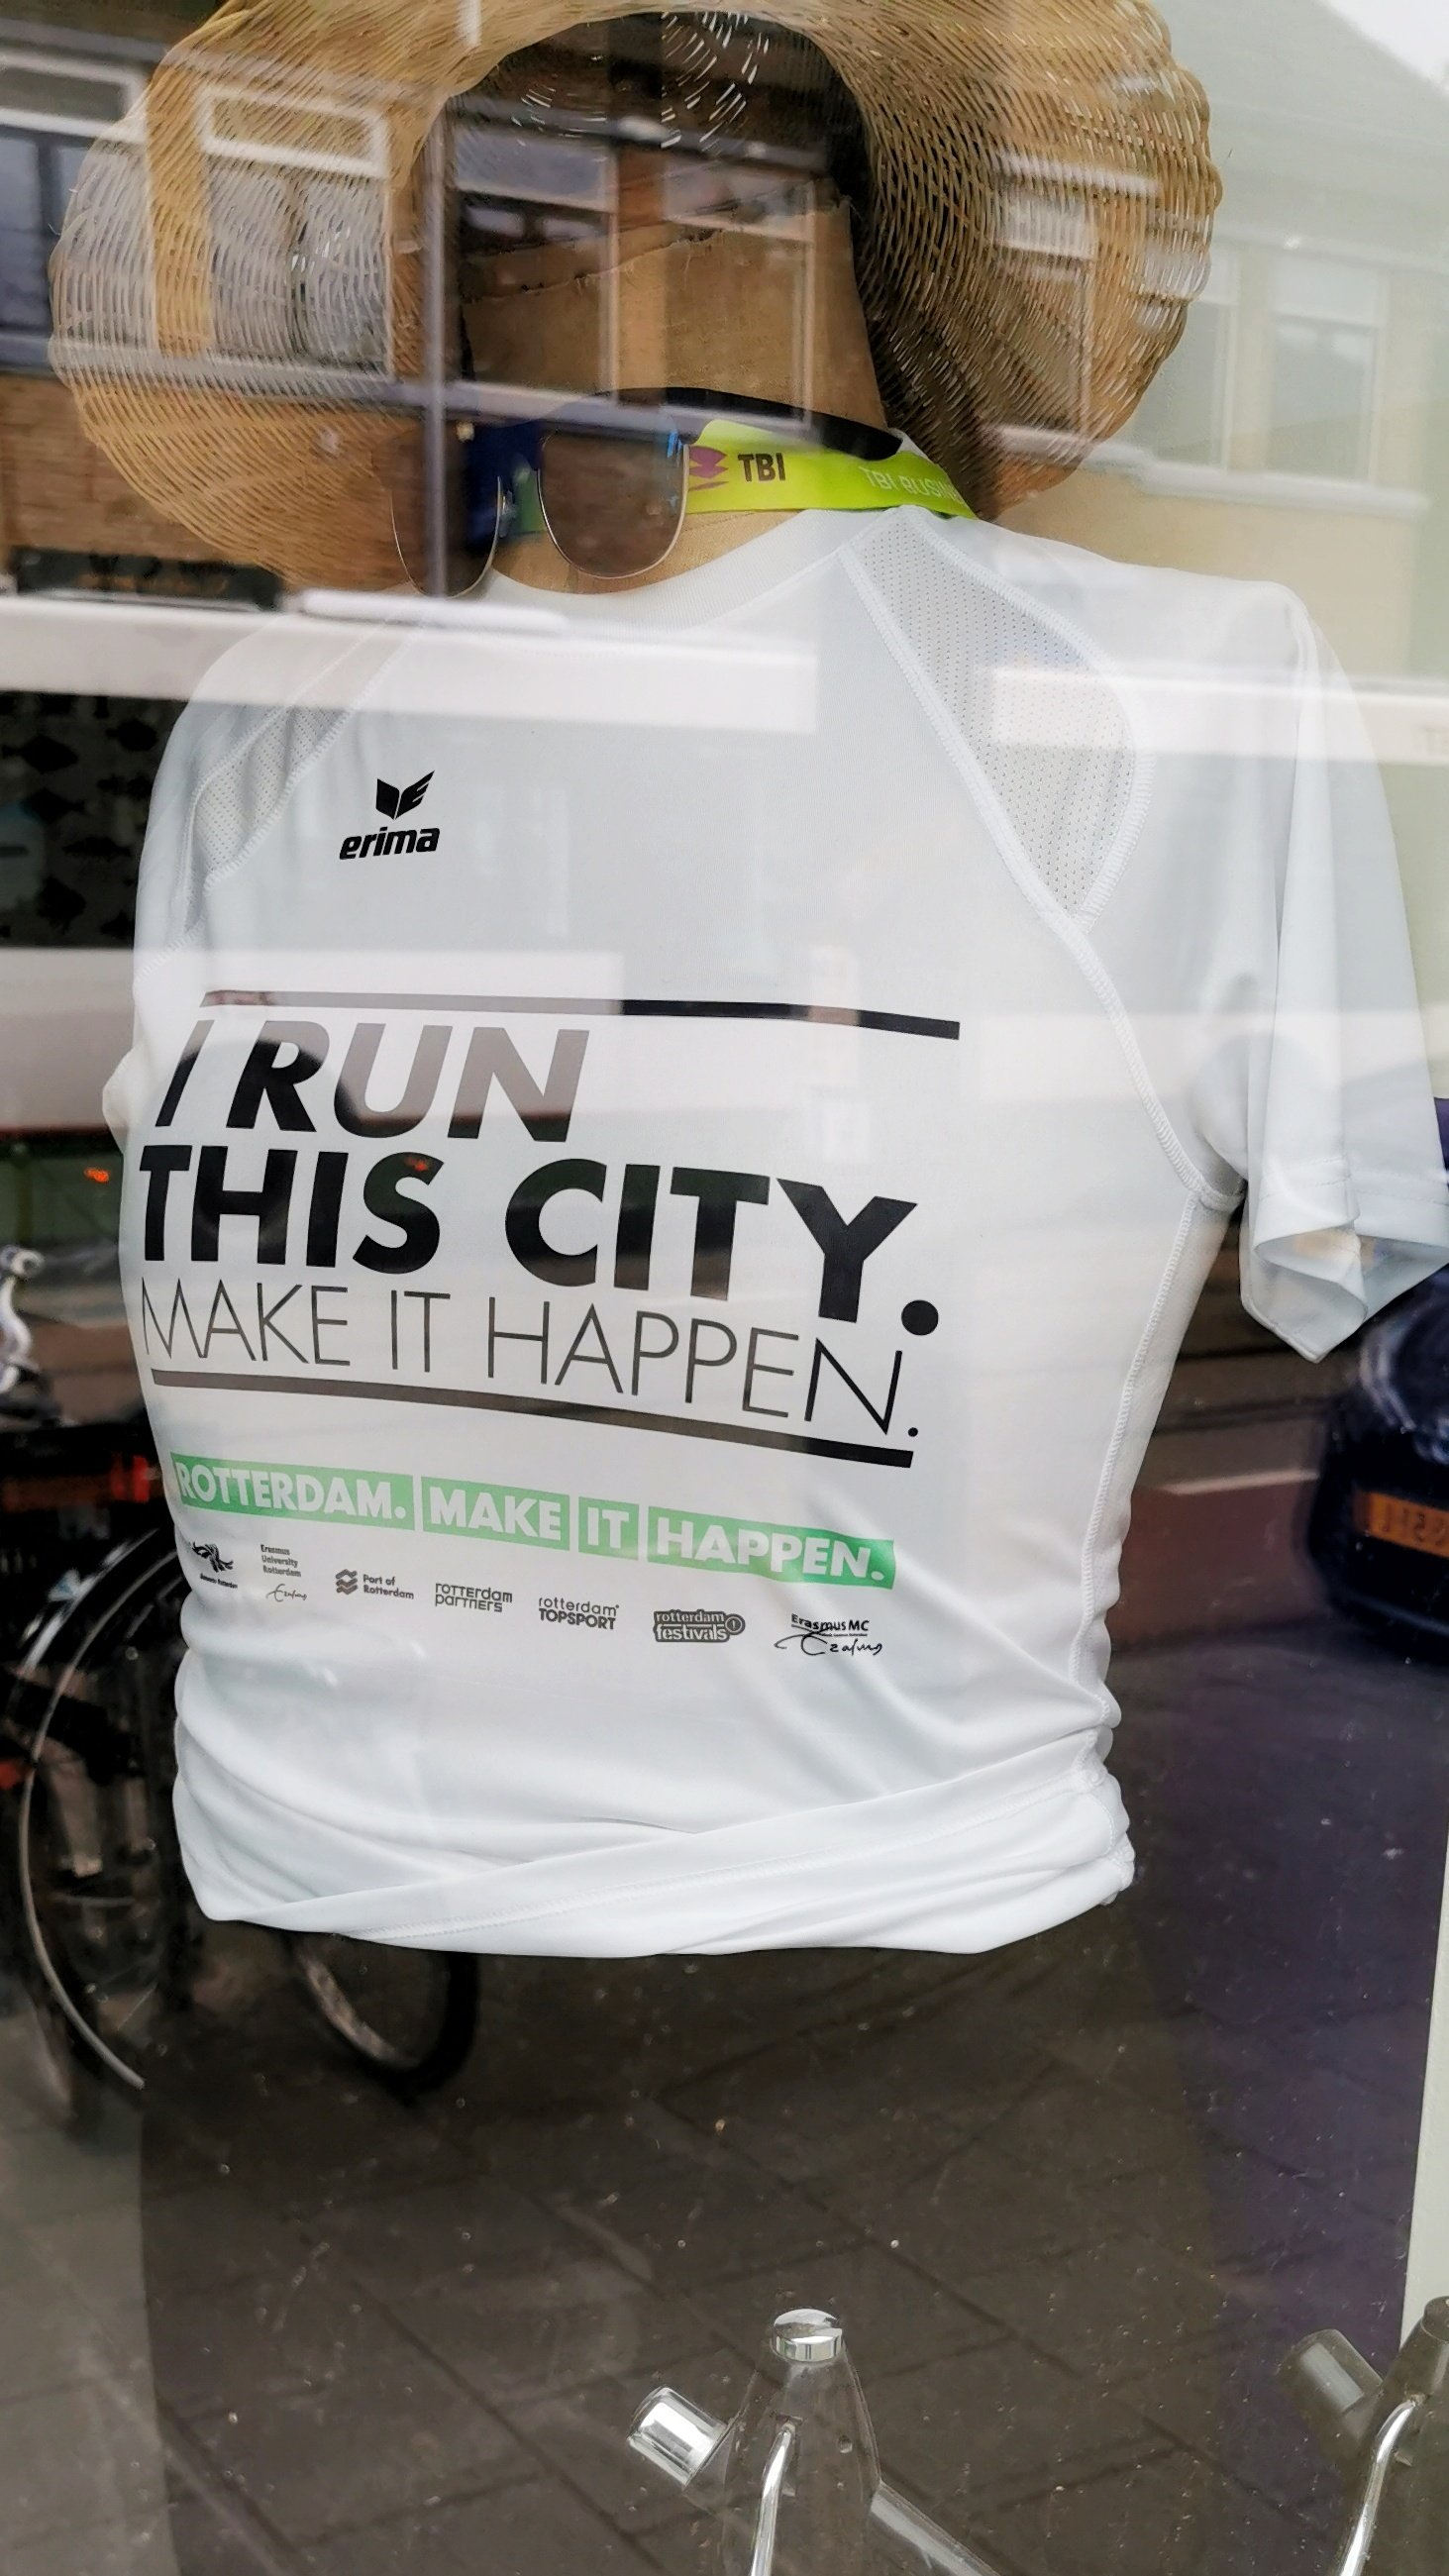 4138: I RUN THIS CITY